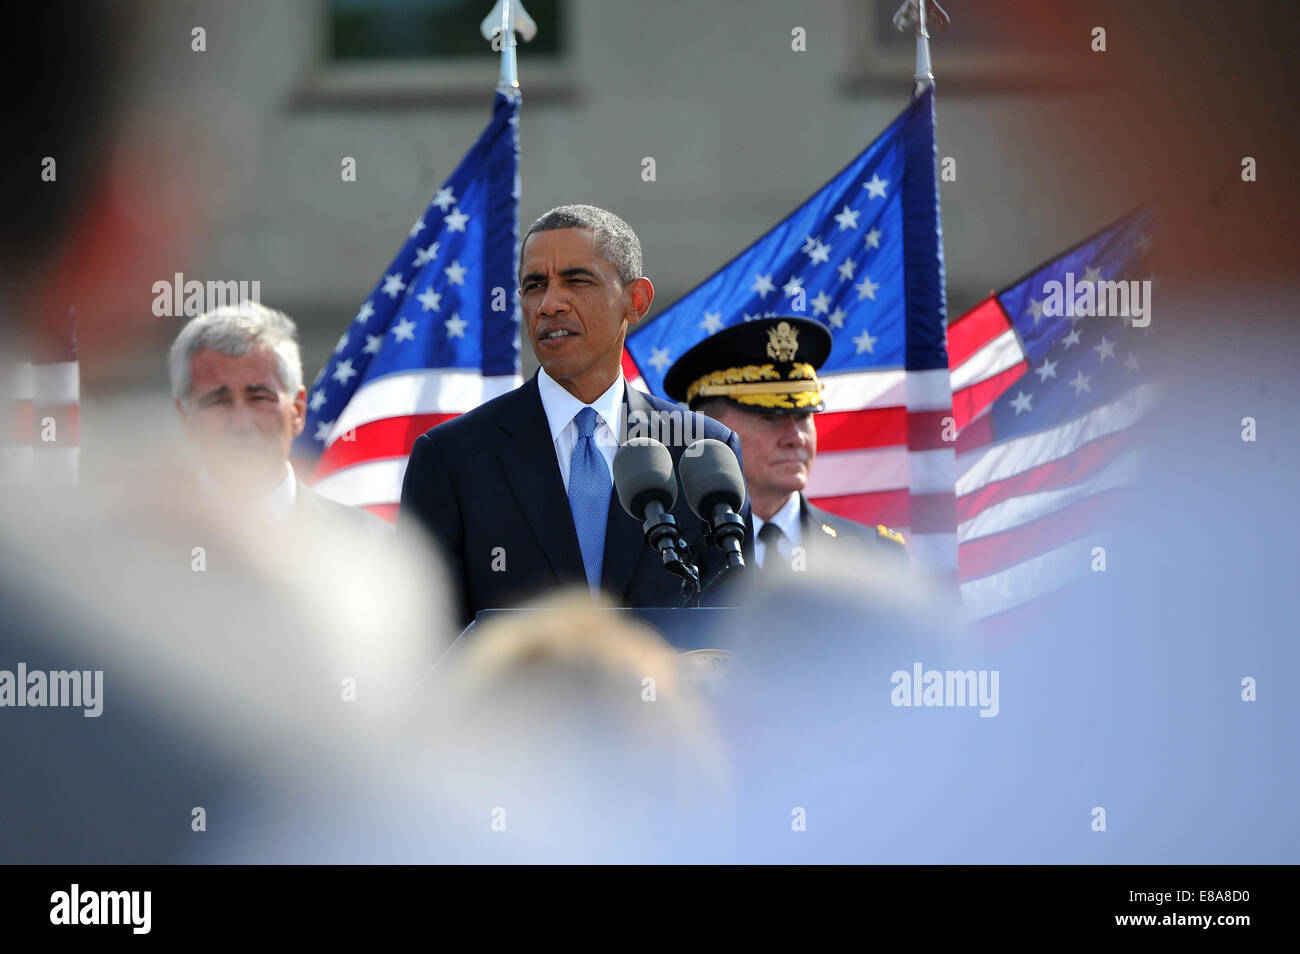 President Barack Obama speaks during the 9/11 memorial ceremony at the National 9/11 Pentagon Memorial at the Pentagon - Stock Image